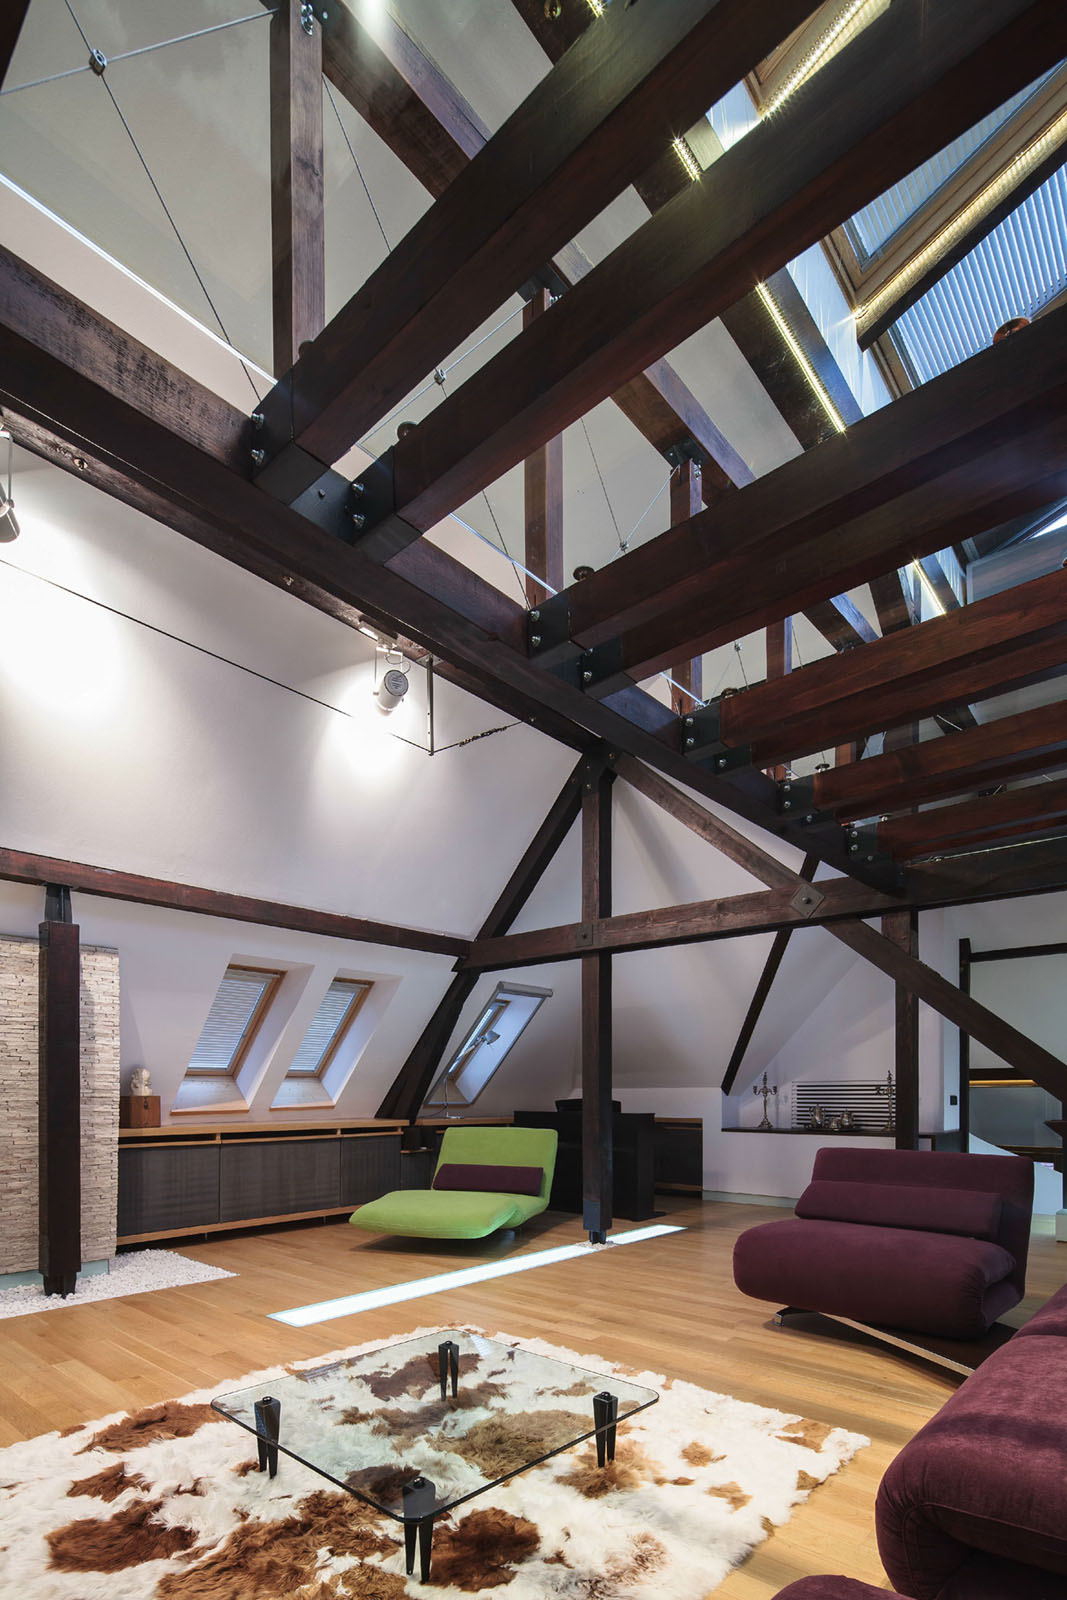 Contemporary Attic Loft with High Ceilings